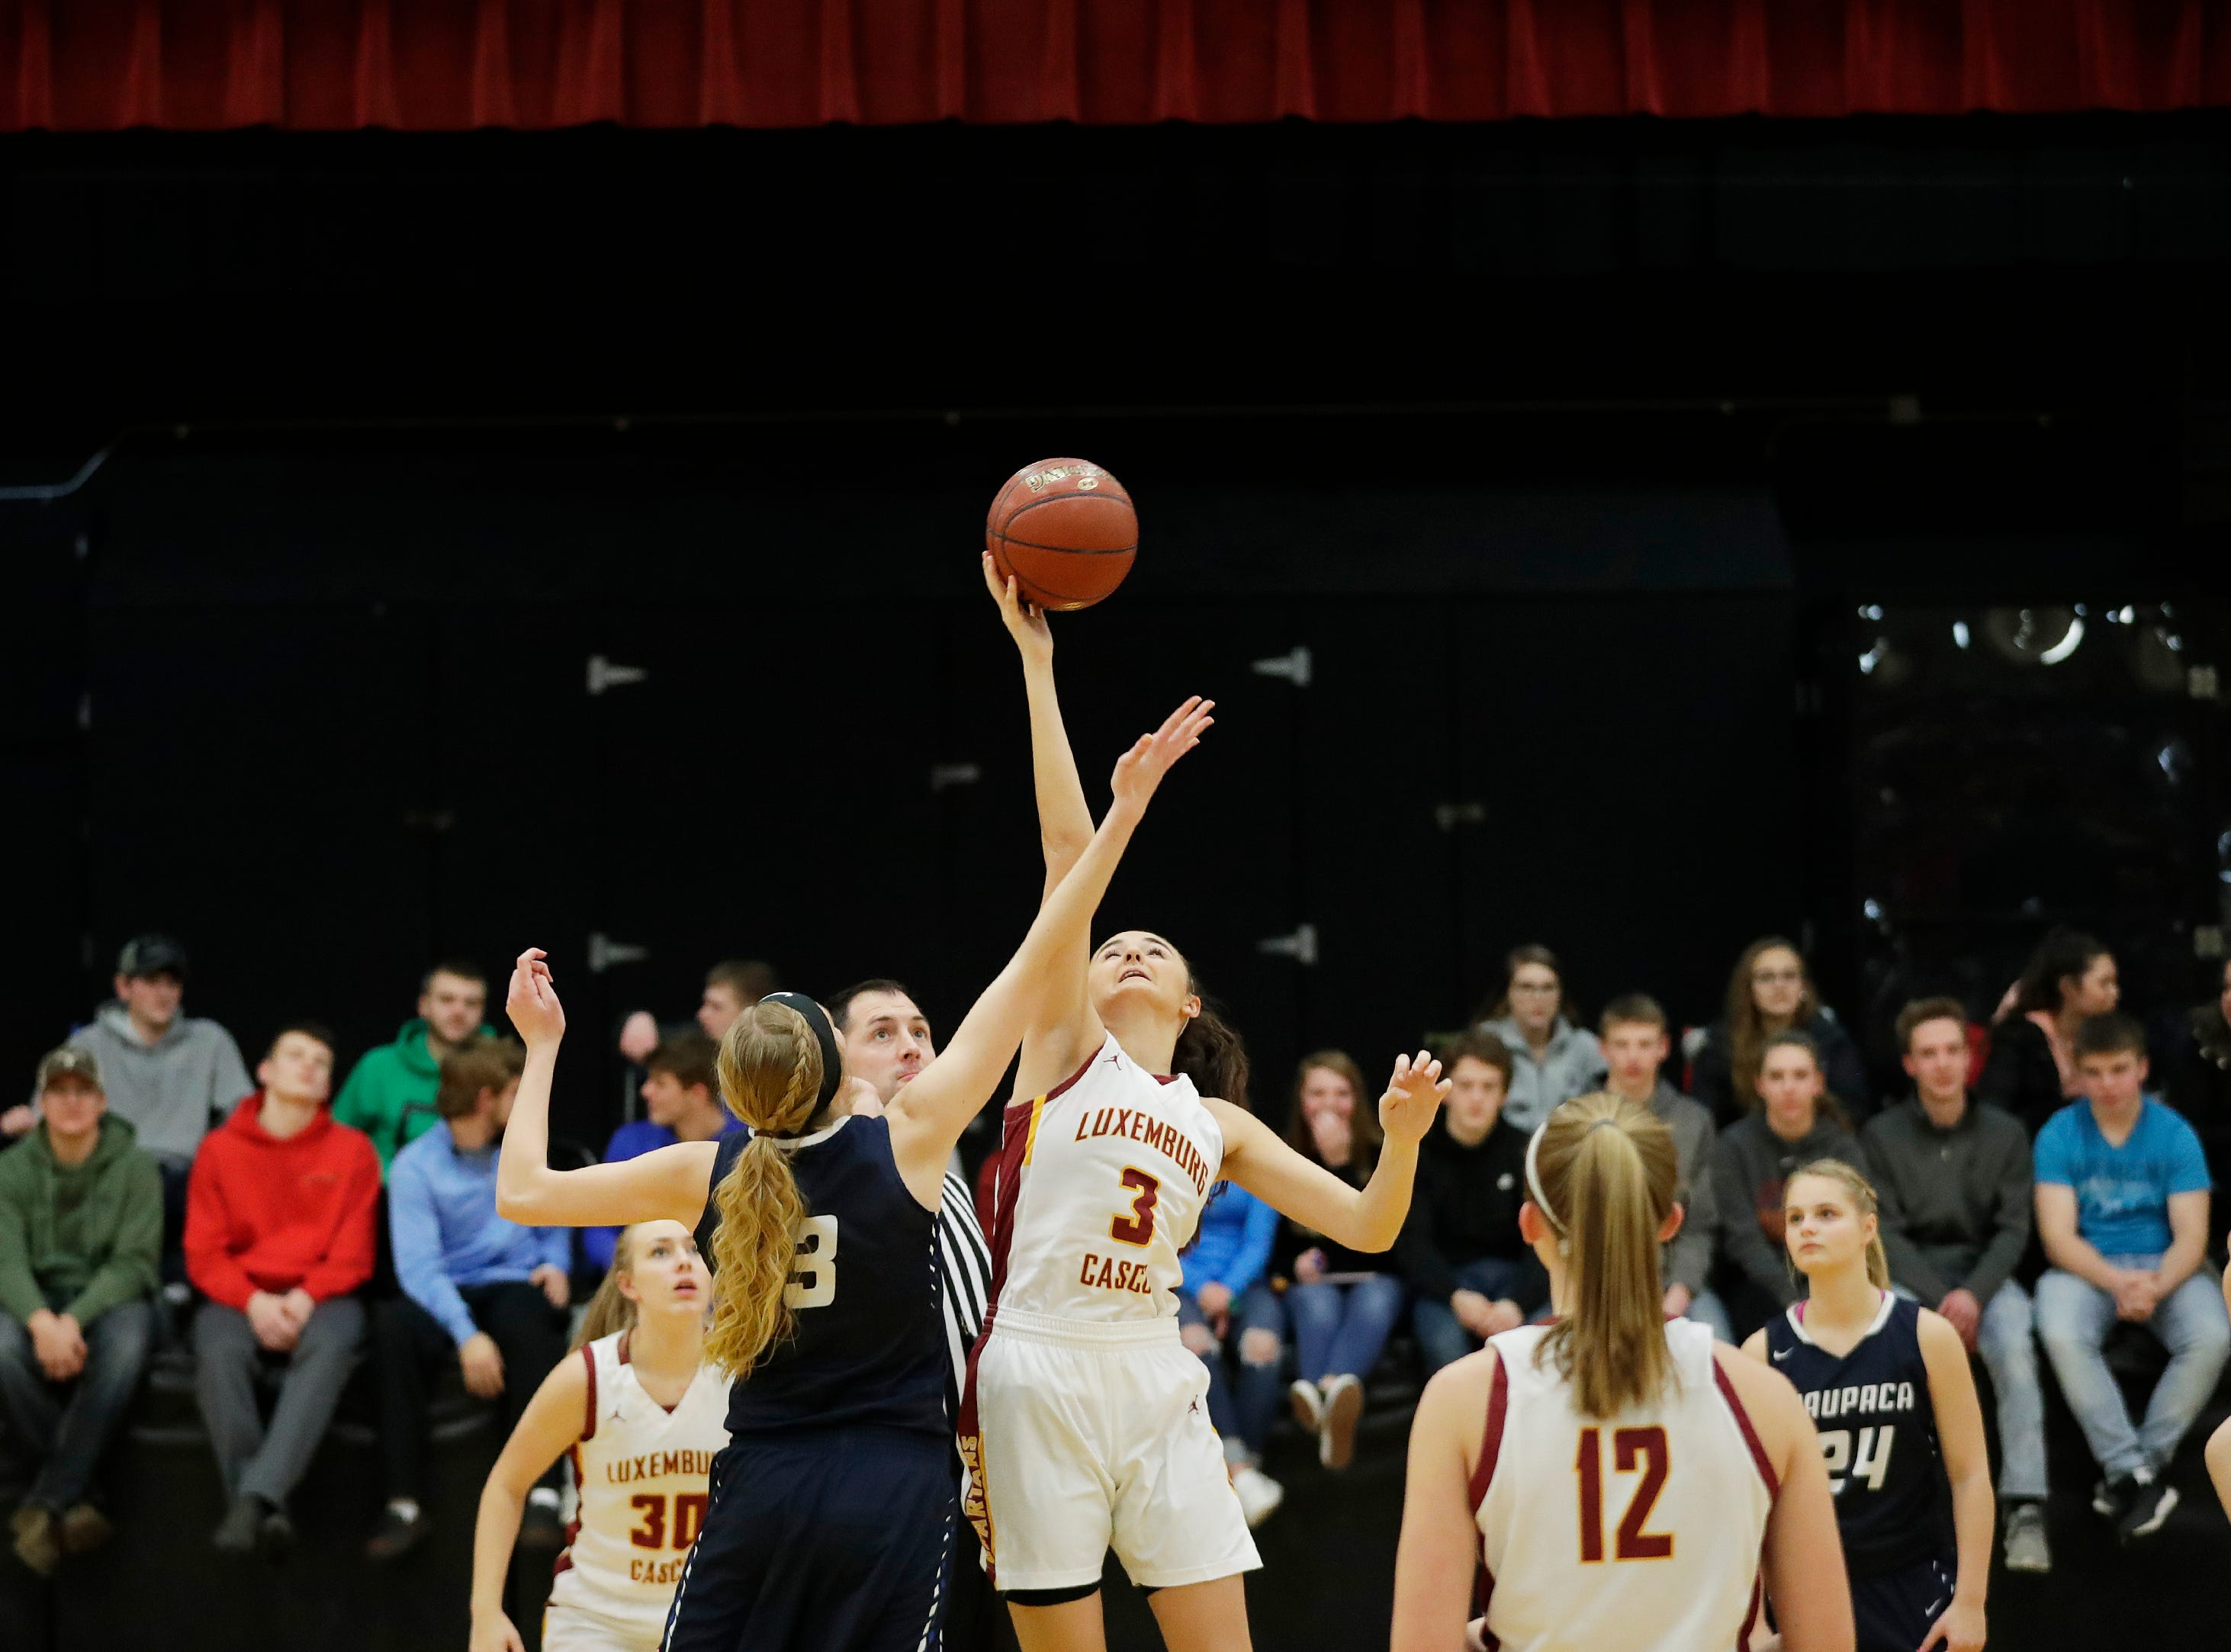 Luxemburg-Casco's Cassie Schiltz (3) wins the opening tipoff against Waupaca in a girls basketball game at Luxemburg-Casco high school on Thursday, January 10, 2019 in Luxemburg, Wis.